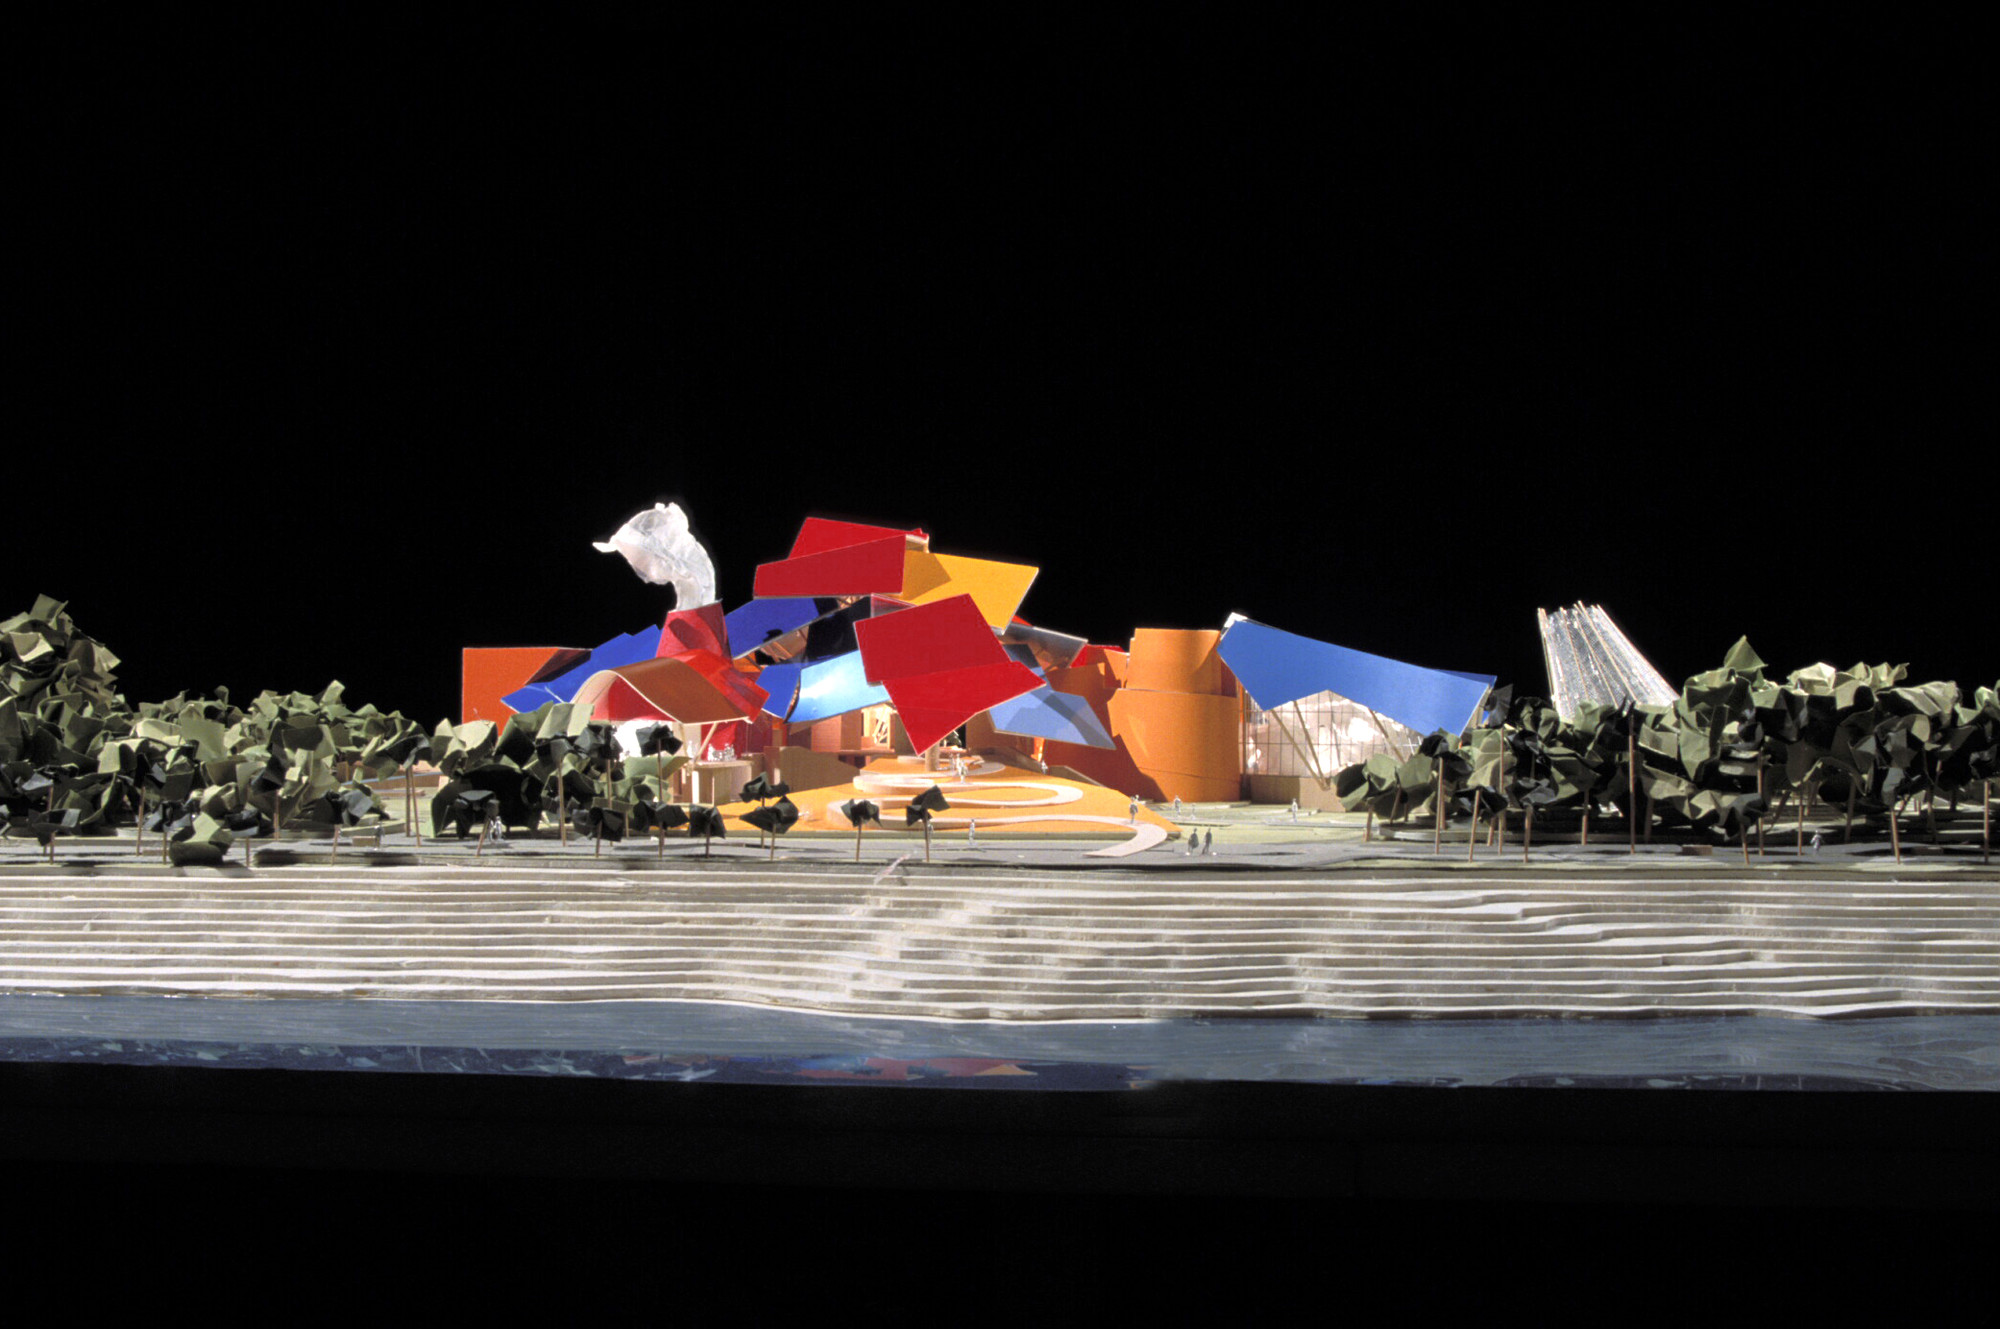 In Progress: The Biomuseo / Frank Gehry